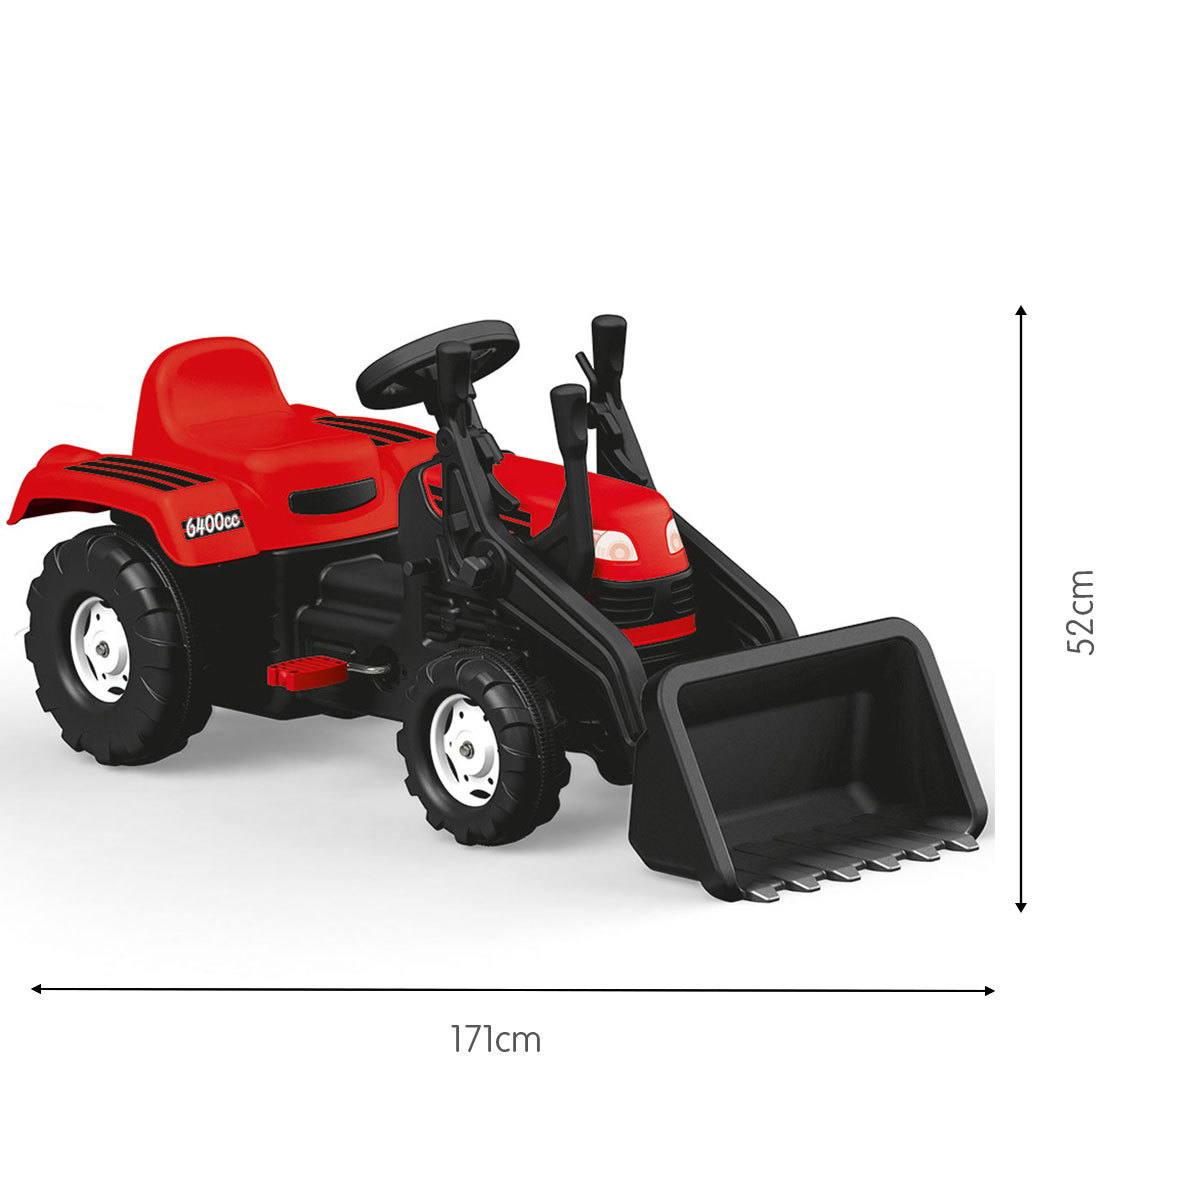 Dolu Pedal Tractor and Excavator (Styles Vary)